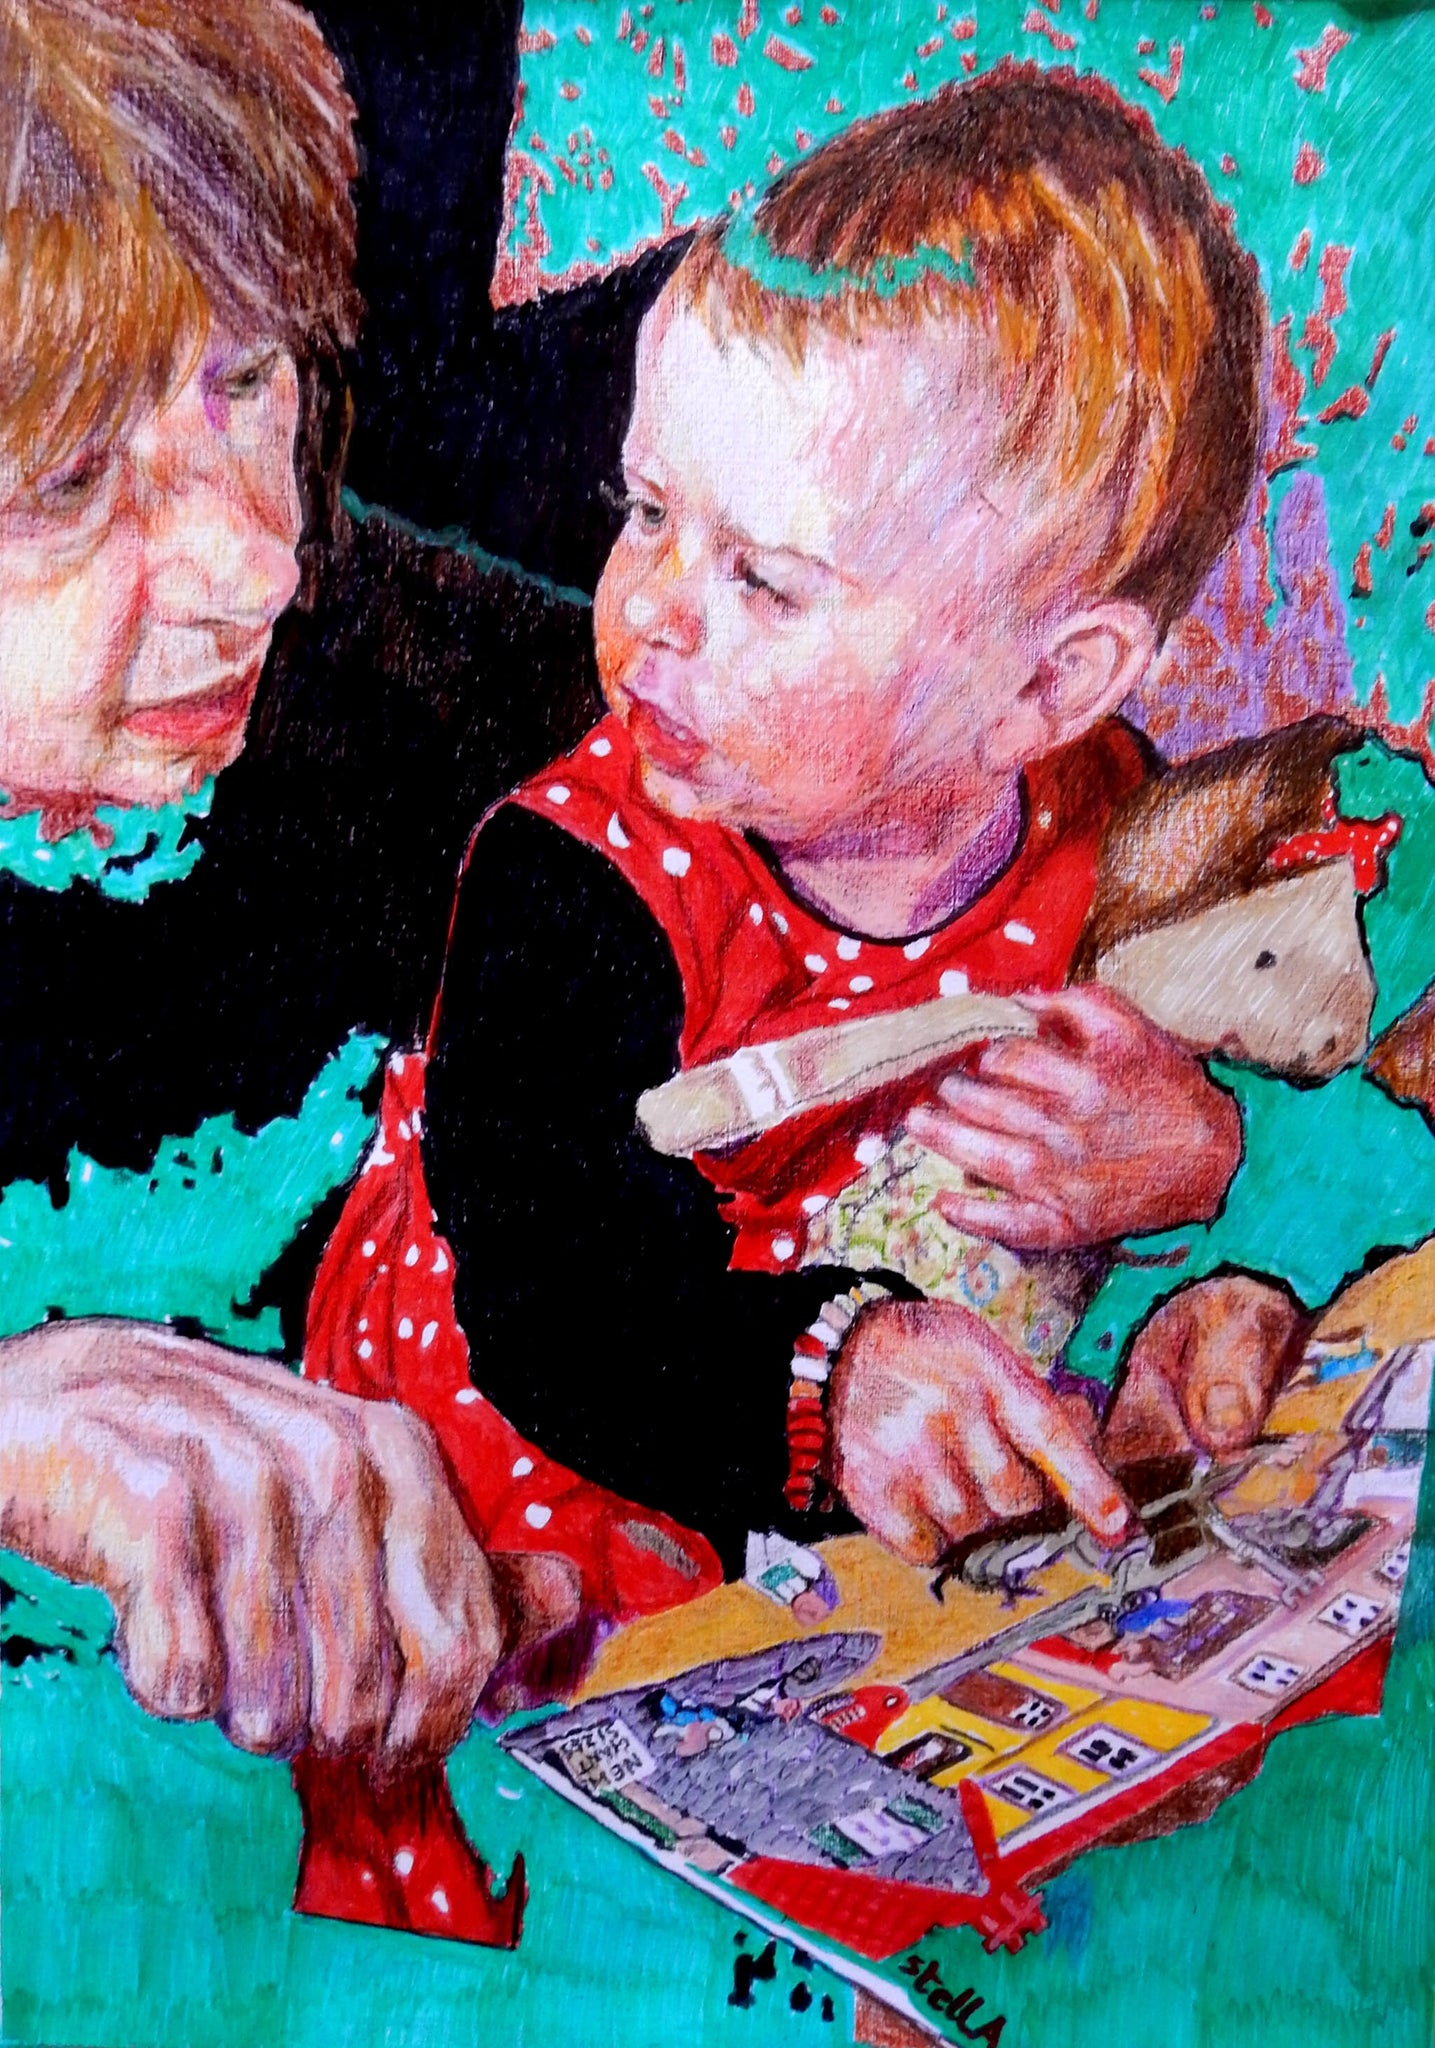 Daisy reading with granny pencil on paper portrait artwork by Stella Tooth.